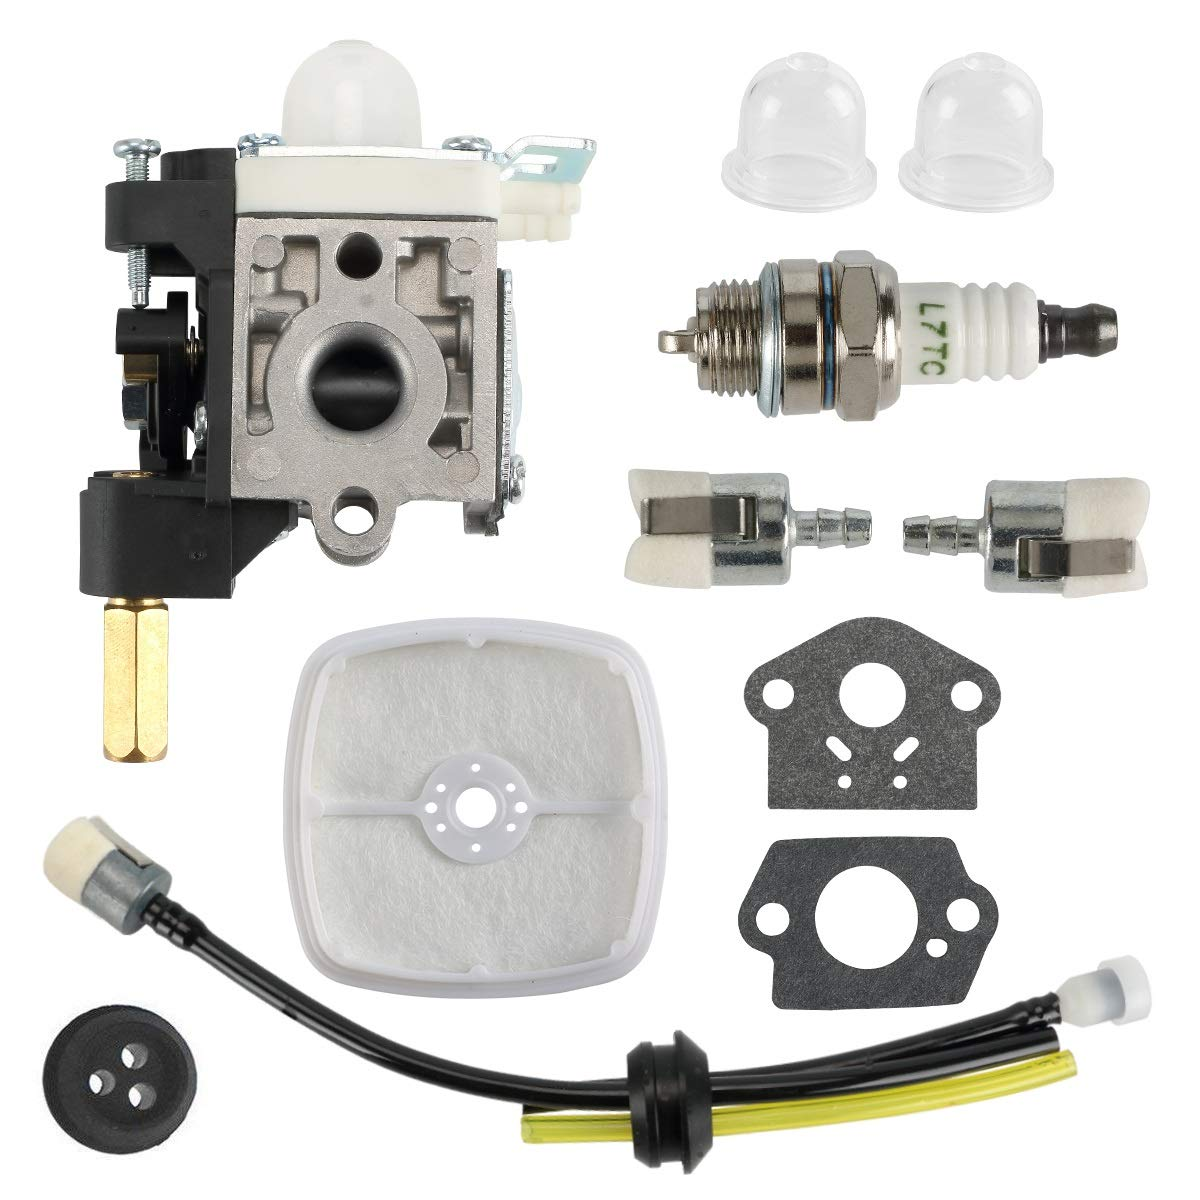 MDAIRC for Zama Carburetor Carb RB-K75 fits GT-200 HC-150 SRM-210, 230 and More by MDAIRC